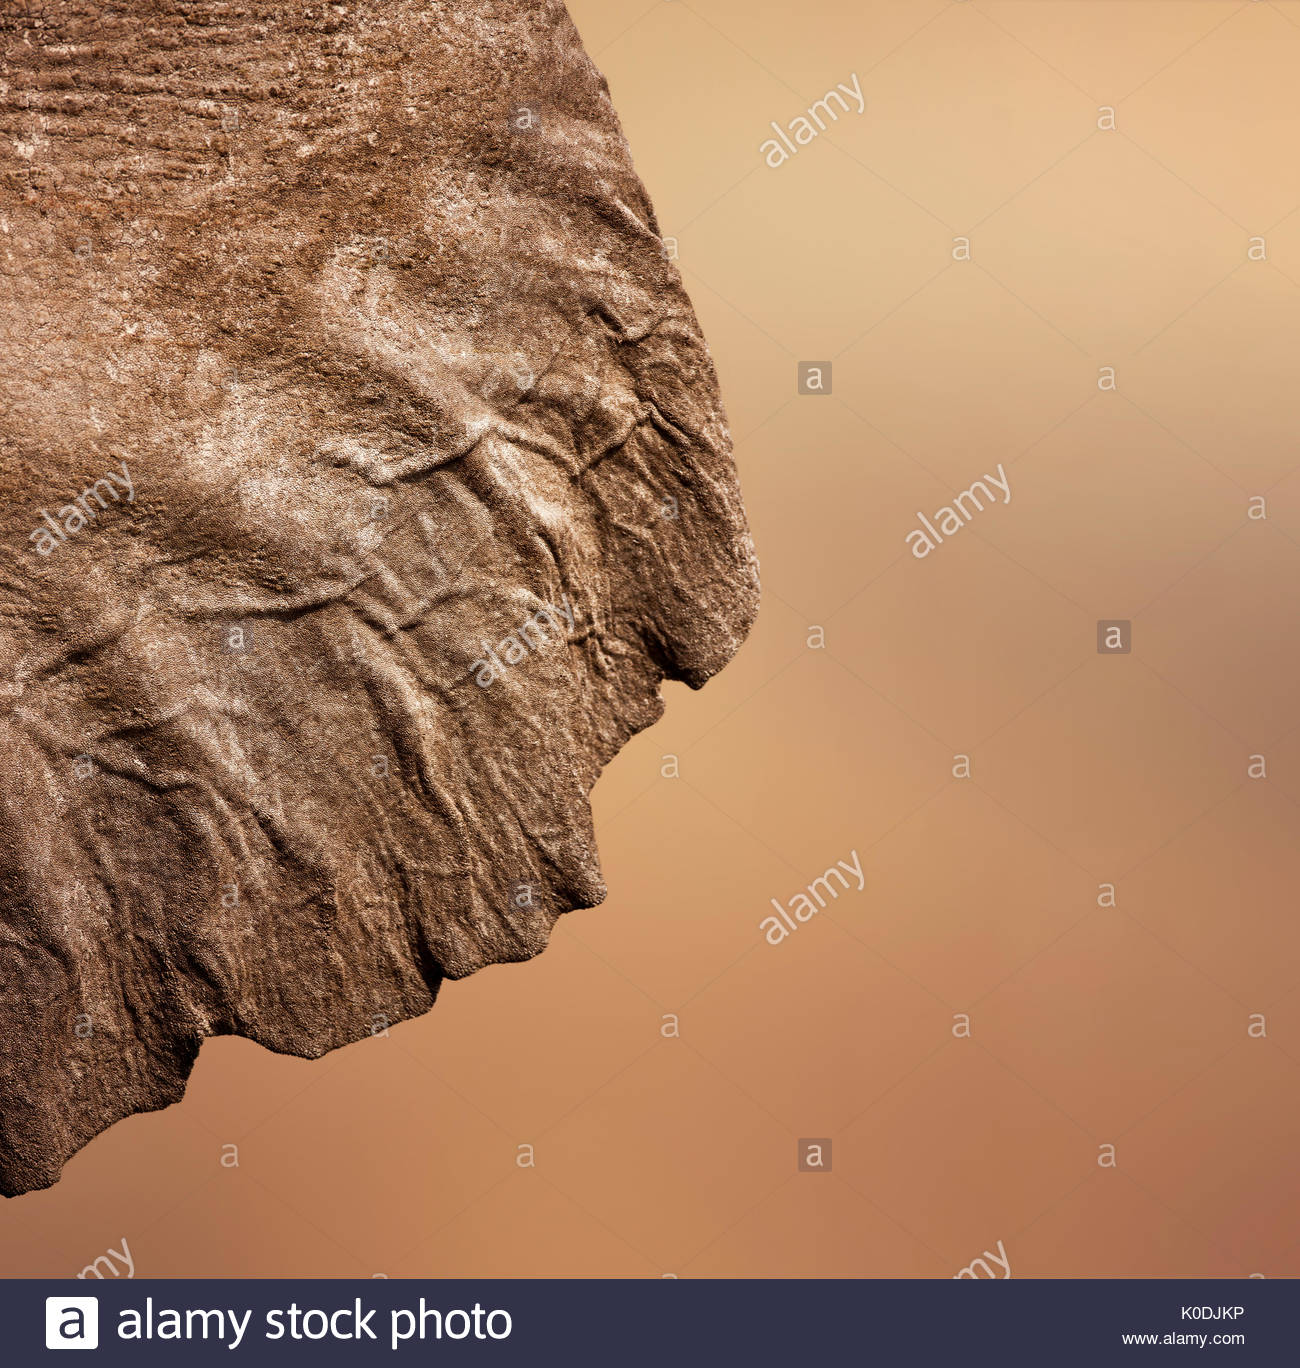 Elephant (Loxodonta Africana) ear seen from behind - Stock Image